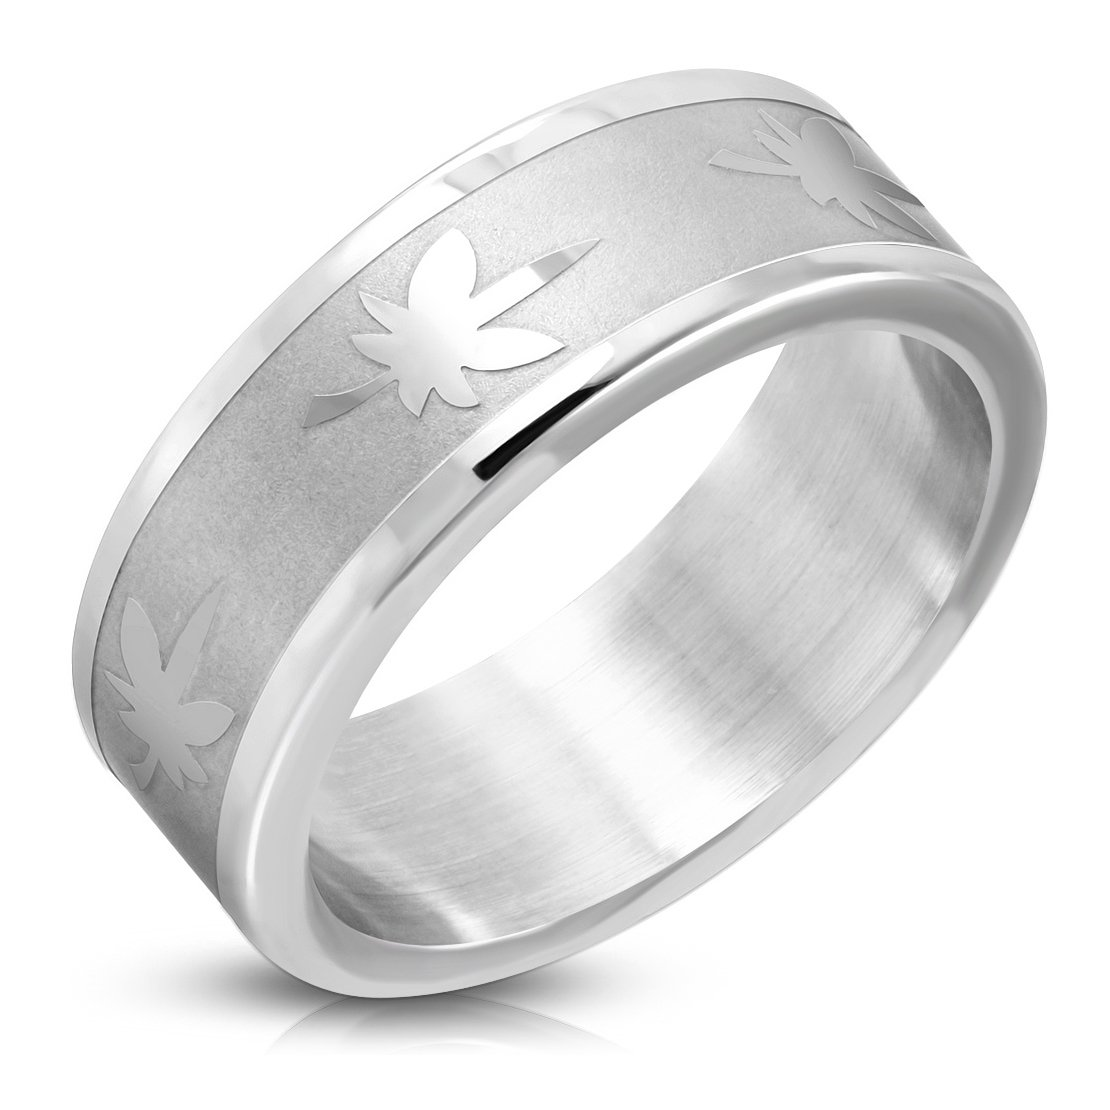 Stainless Steel Matte Finished Maple// Marijuana Ganja Leaf Flat Band Ring